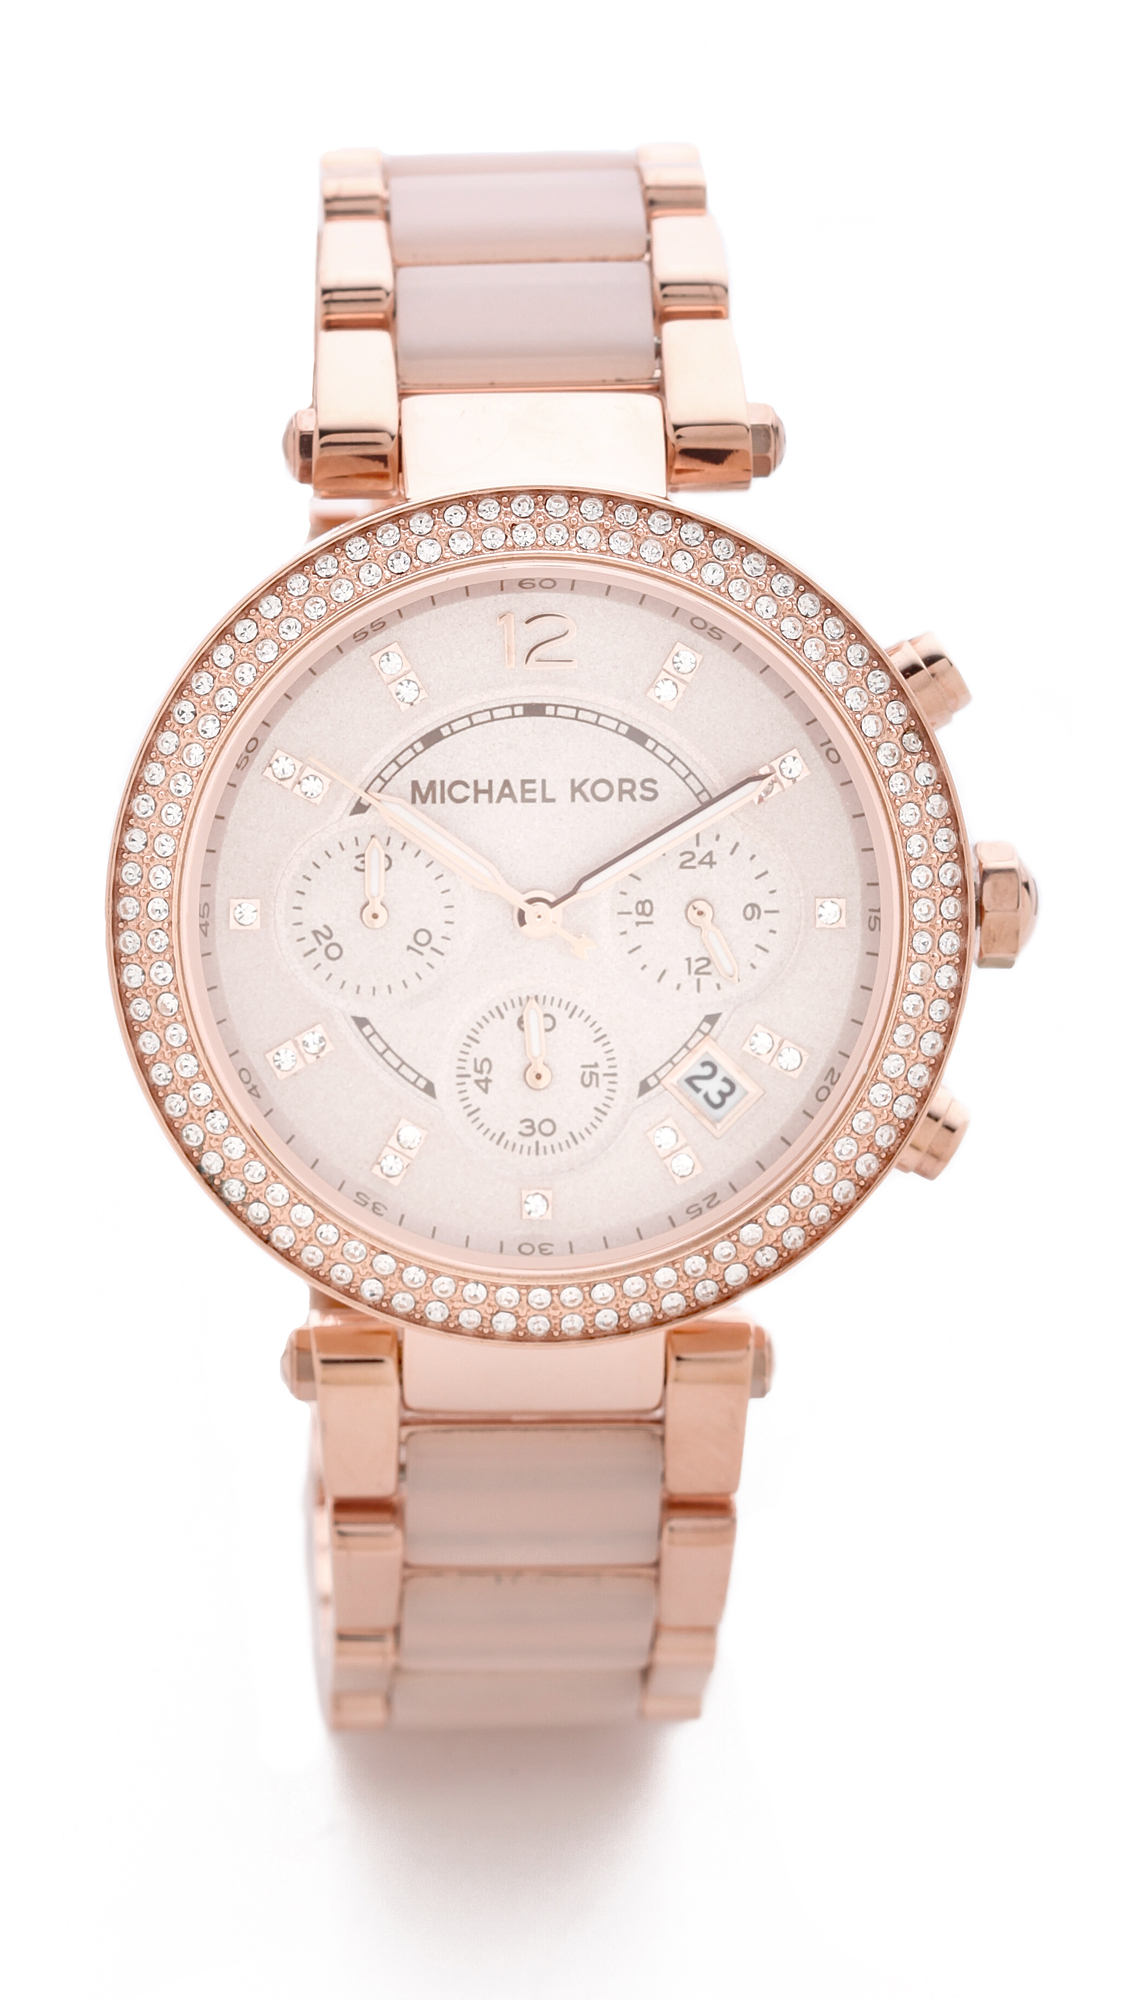 How to change the date on a michael kors watch in Australia